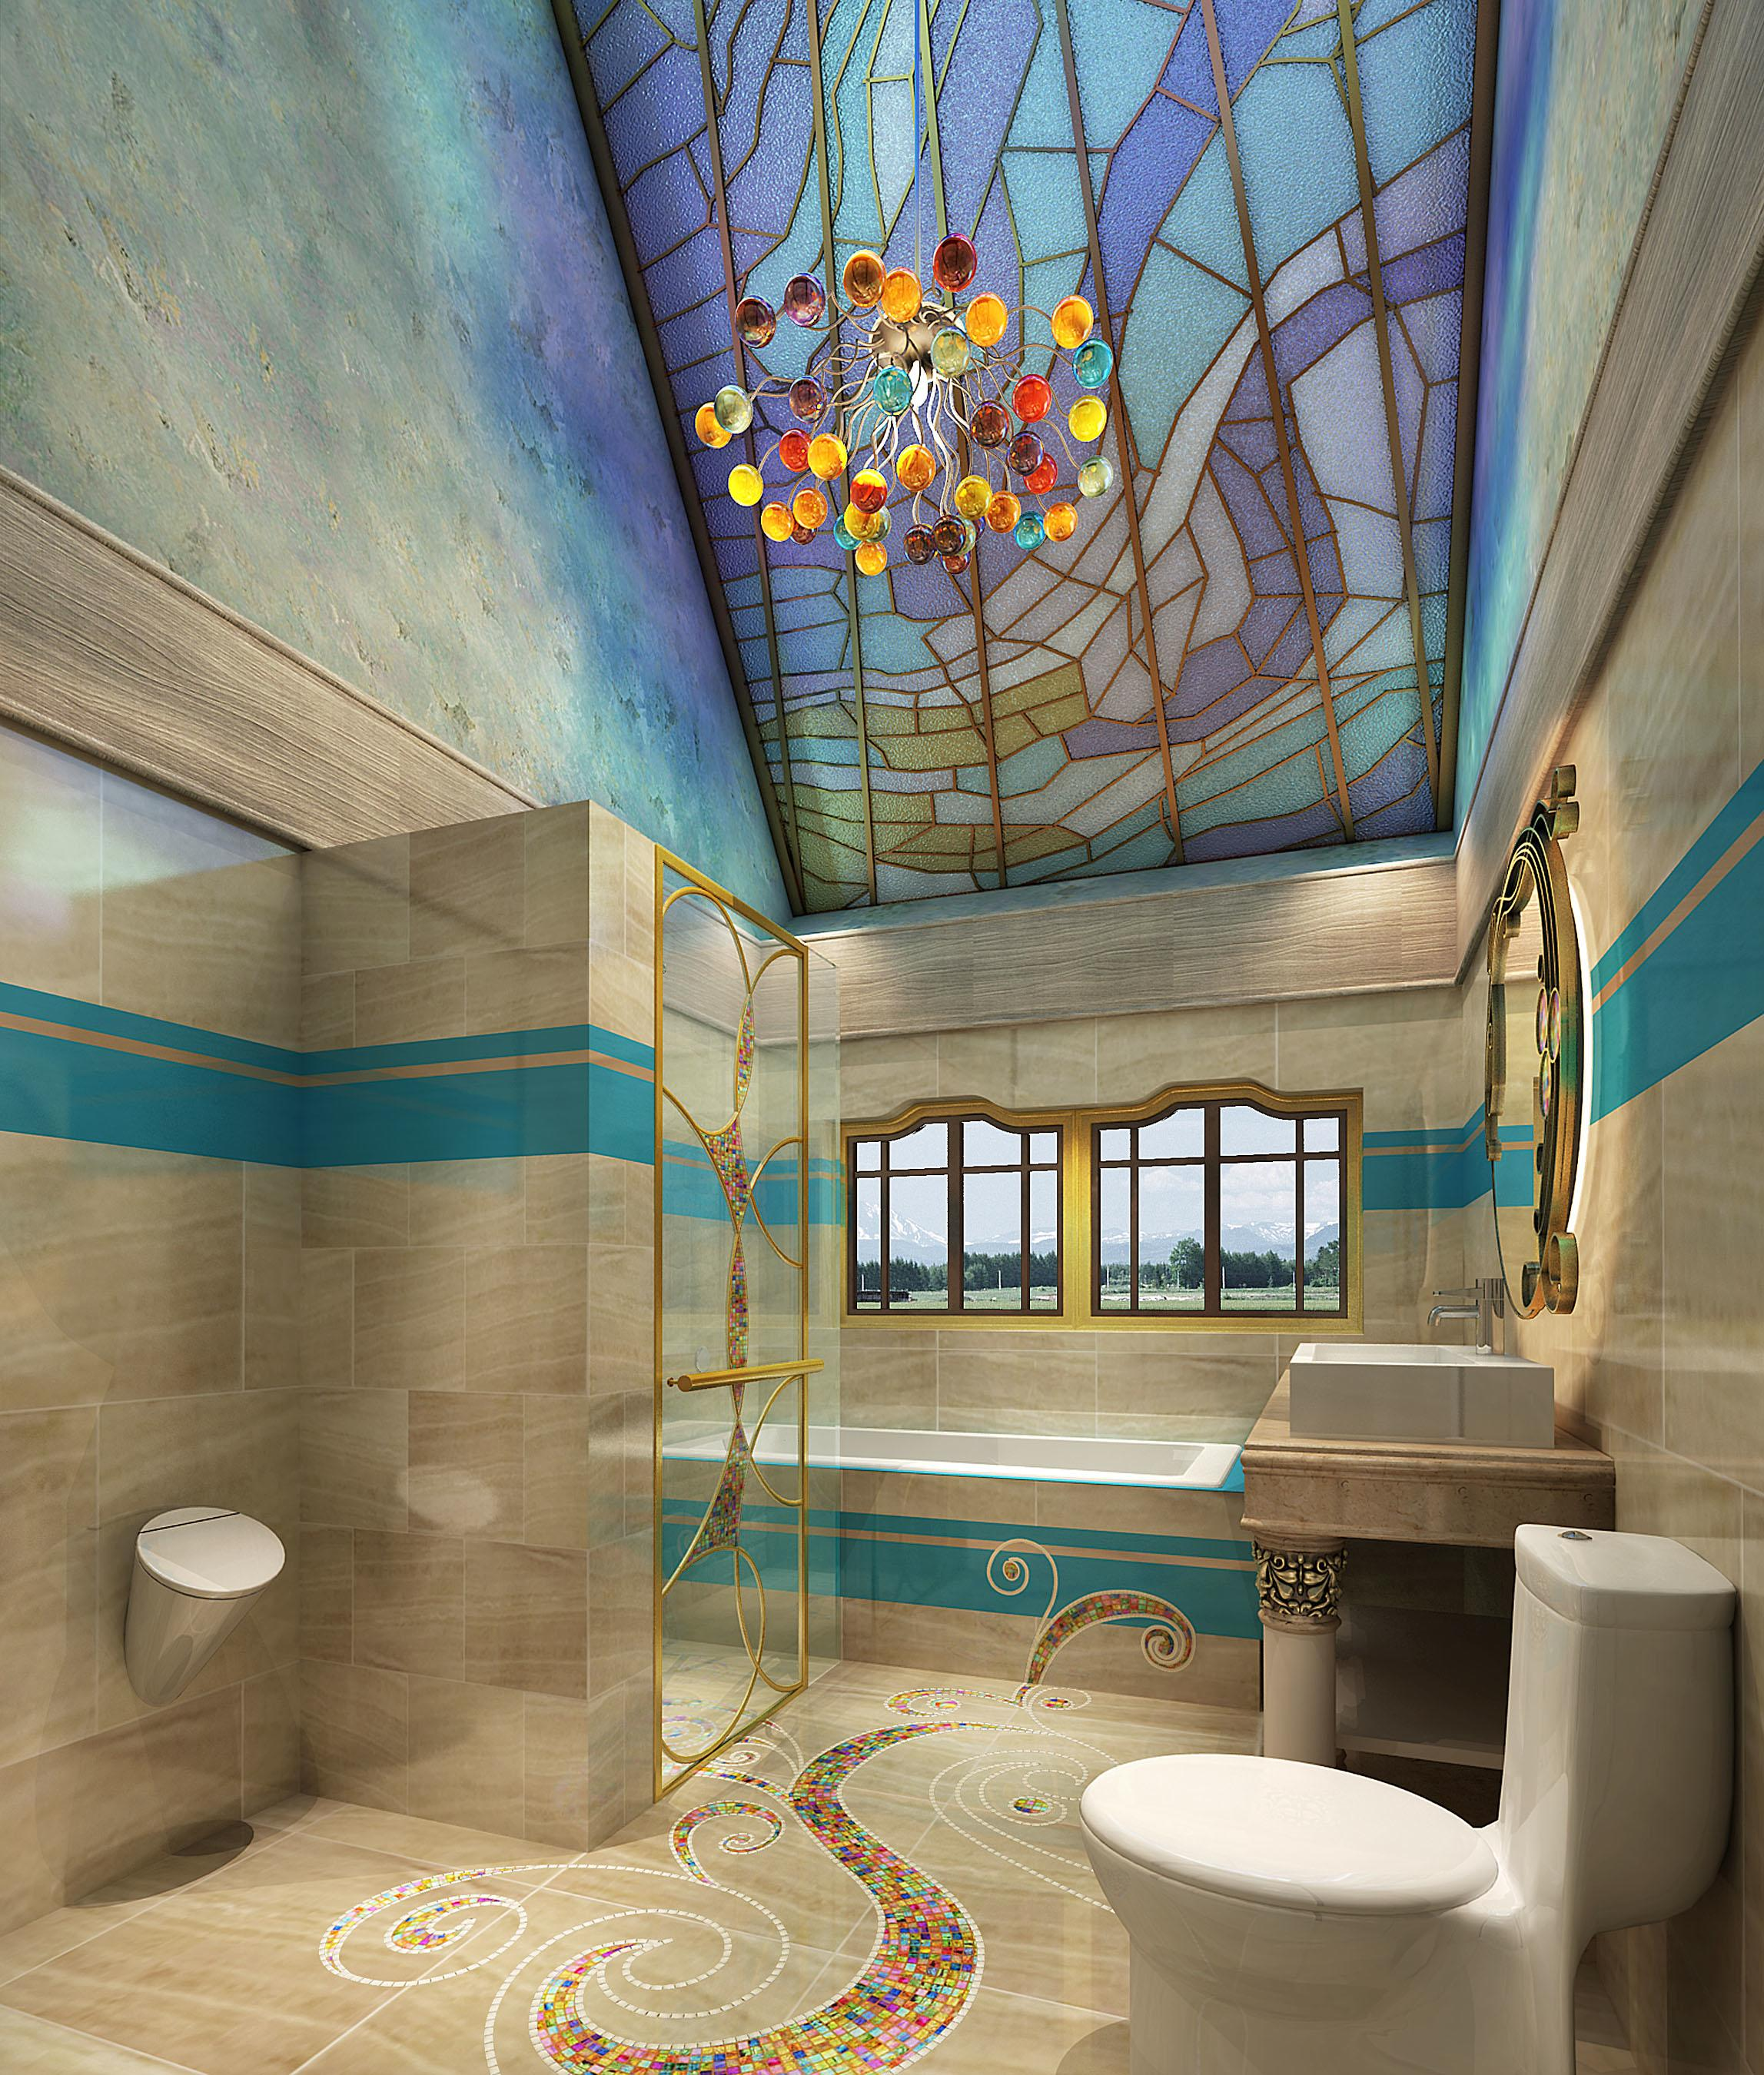 architectural design, interior design, design, residential design, commercial design, architecture, old world, style, boutique hotel, boutique hotel design, hotel design, hotel, hospitality design, rental design, how to design, how to airbnb, how to design to rent, design solutions, LA, los angeles, NYC, new york, interior design tutorials, design tutorials, decorating, how to decorate,